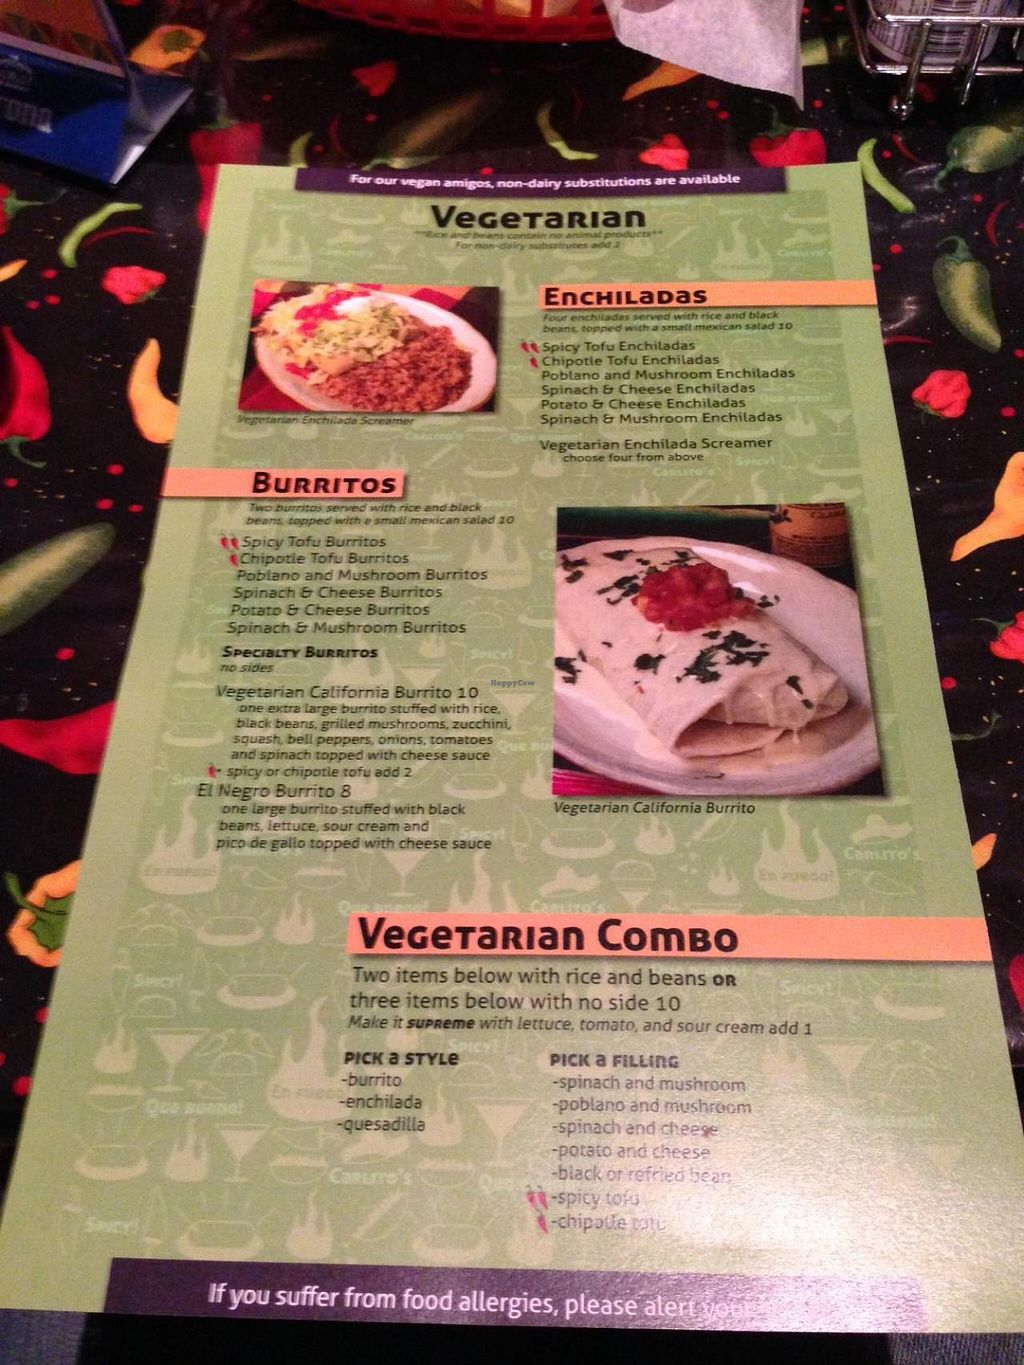 """Photo of Carlito's Mexican Bar and Grill  by <a href=""""/members/profile/TheVeganVagabond"""">TheVeganVagabond</a> <br/>Side two of the veg menu <br/> July 8, 2014  - <a href='/contact/abuse/image/48681/73566'>Report</a>"""